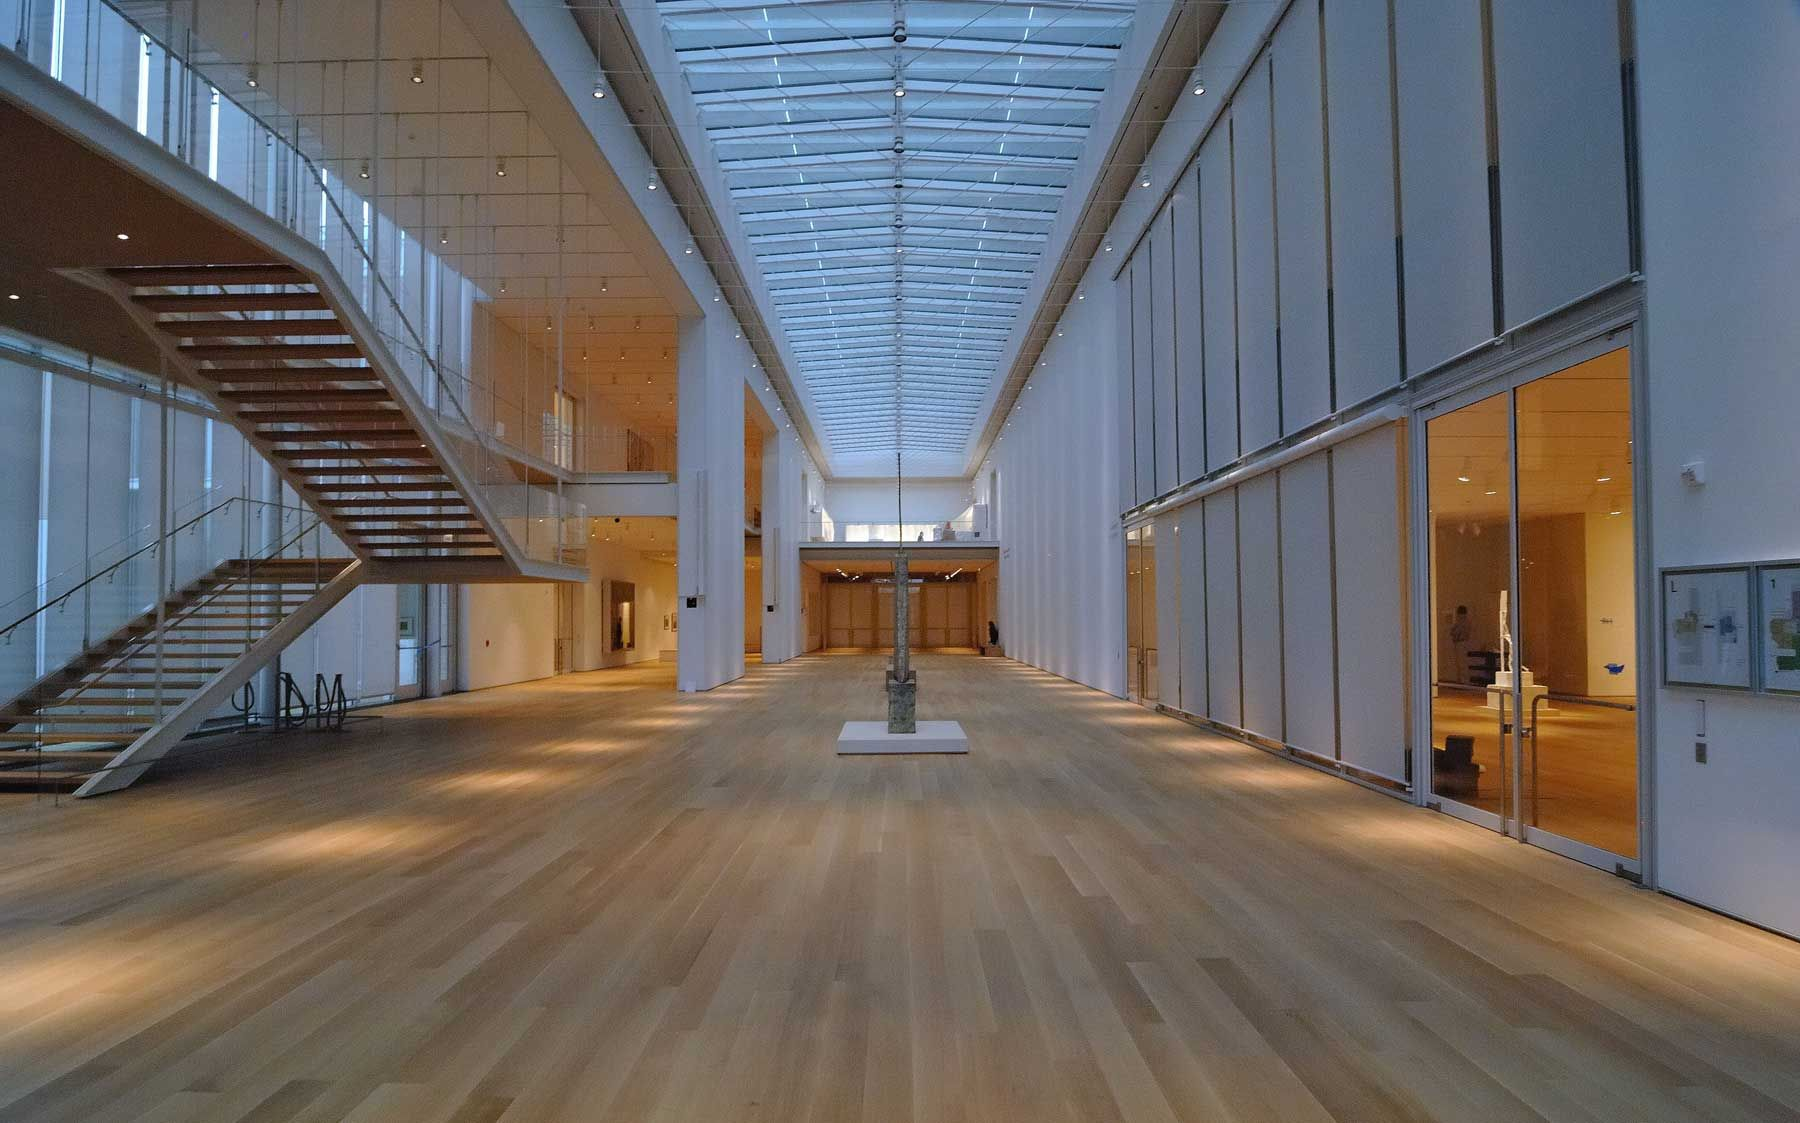 Art Institute of Chicago Modern Wing in United States by Renzo Piano  architecture design